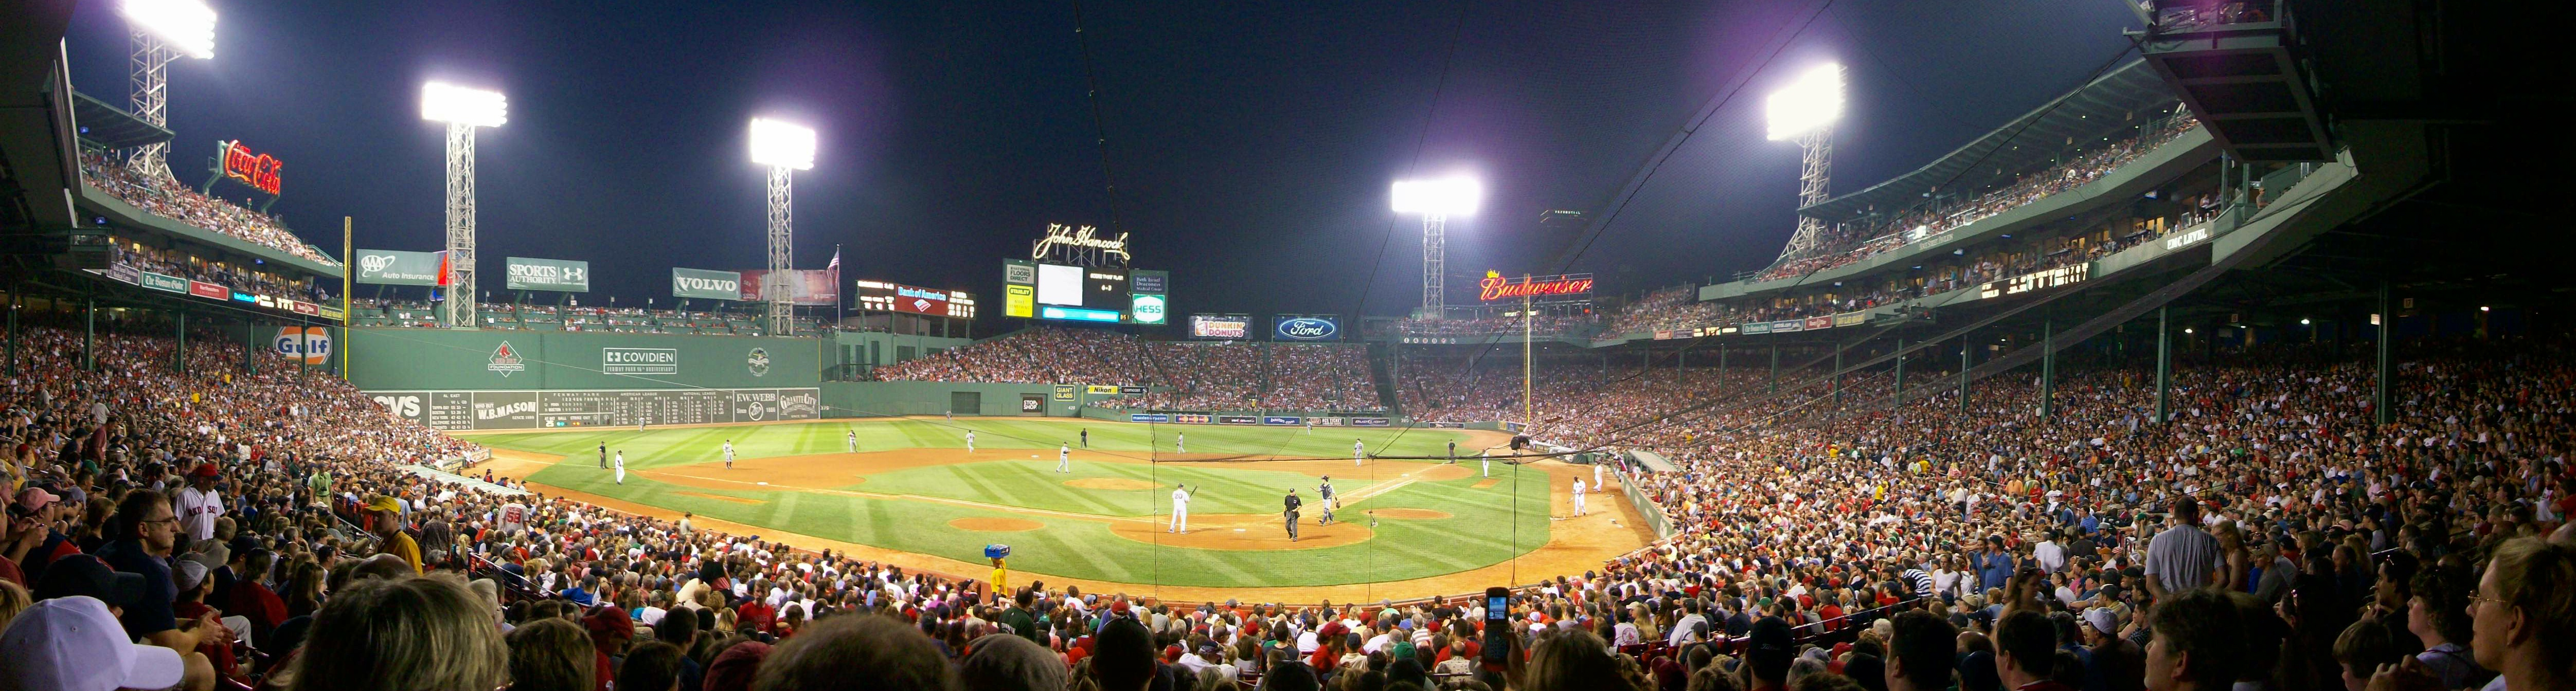 Red Sox Tickets in Boston, MA